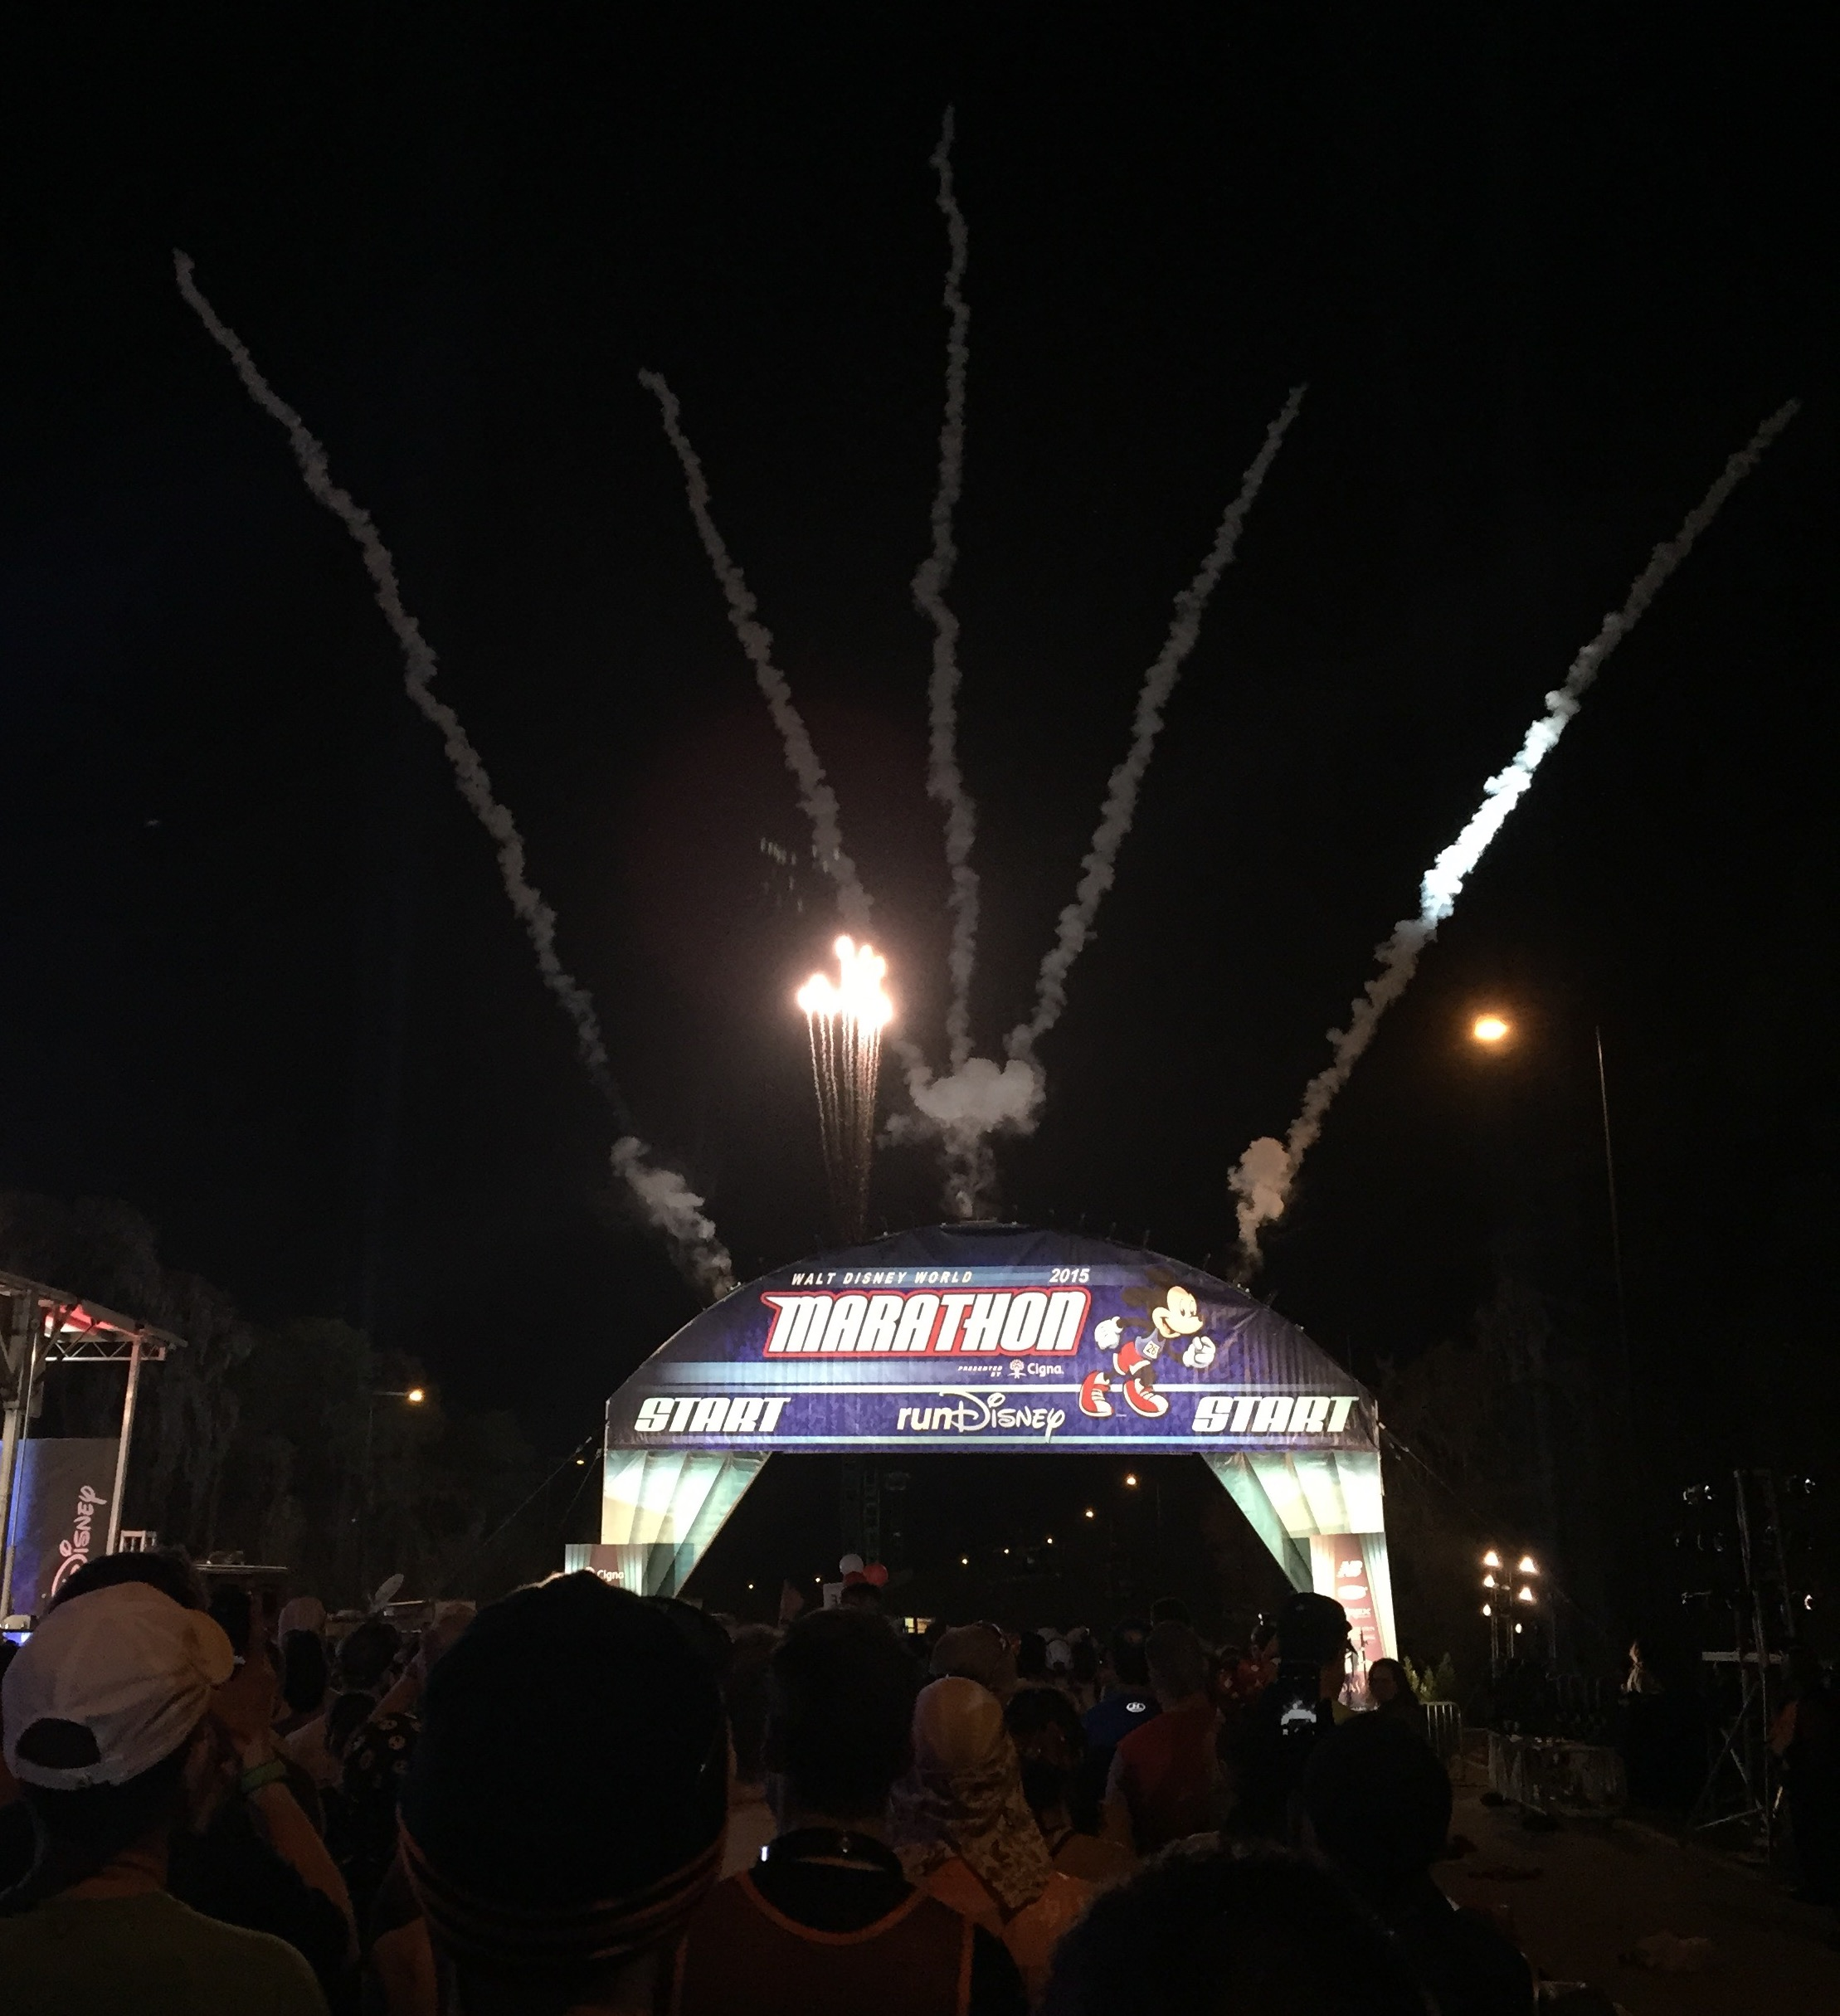 2015 Walt Disney World Marathon start